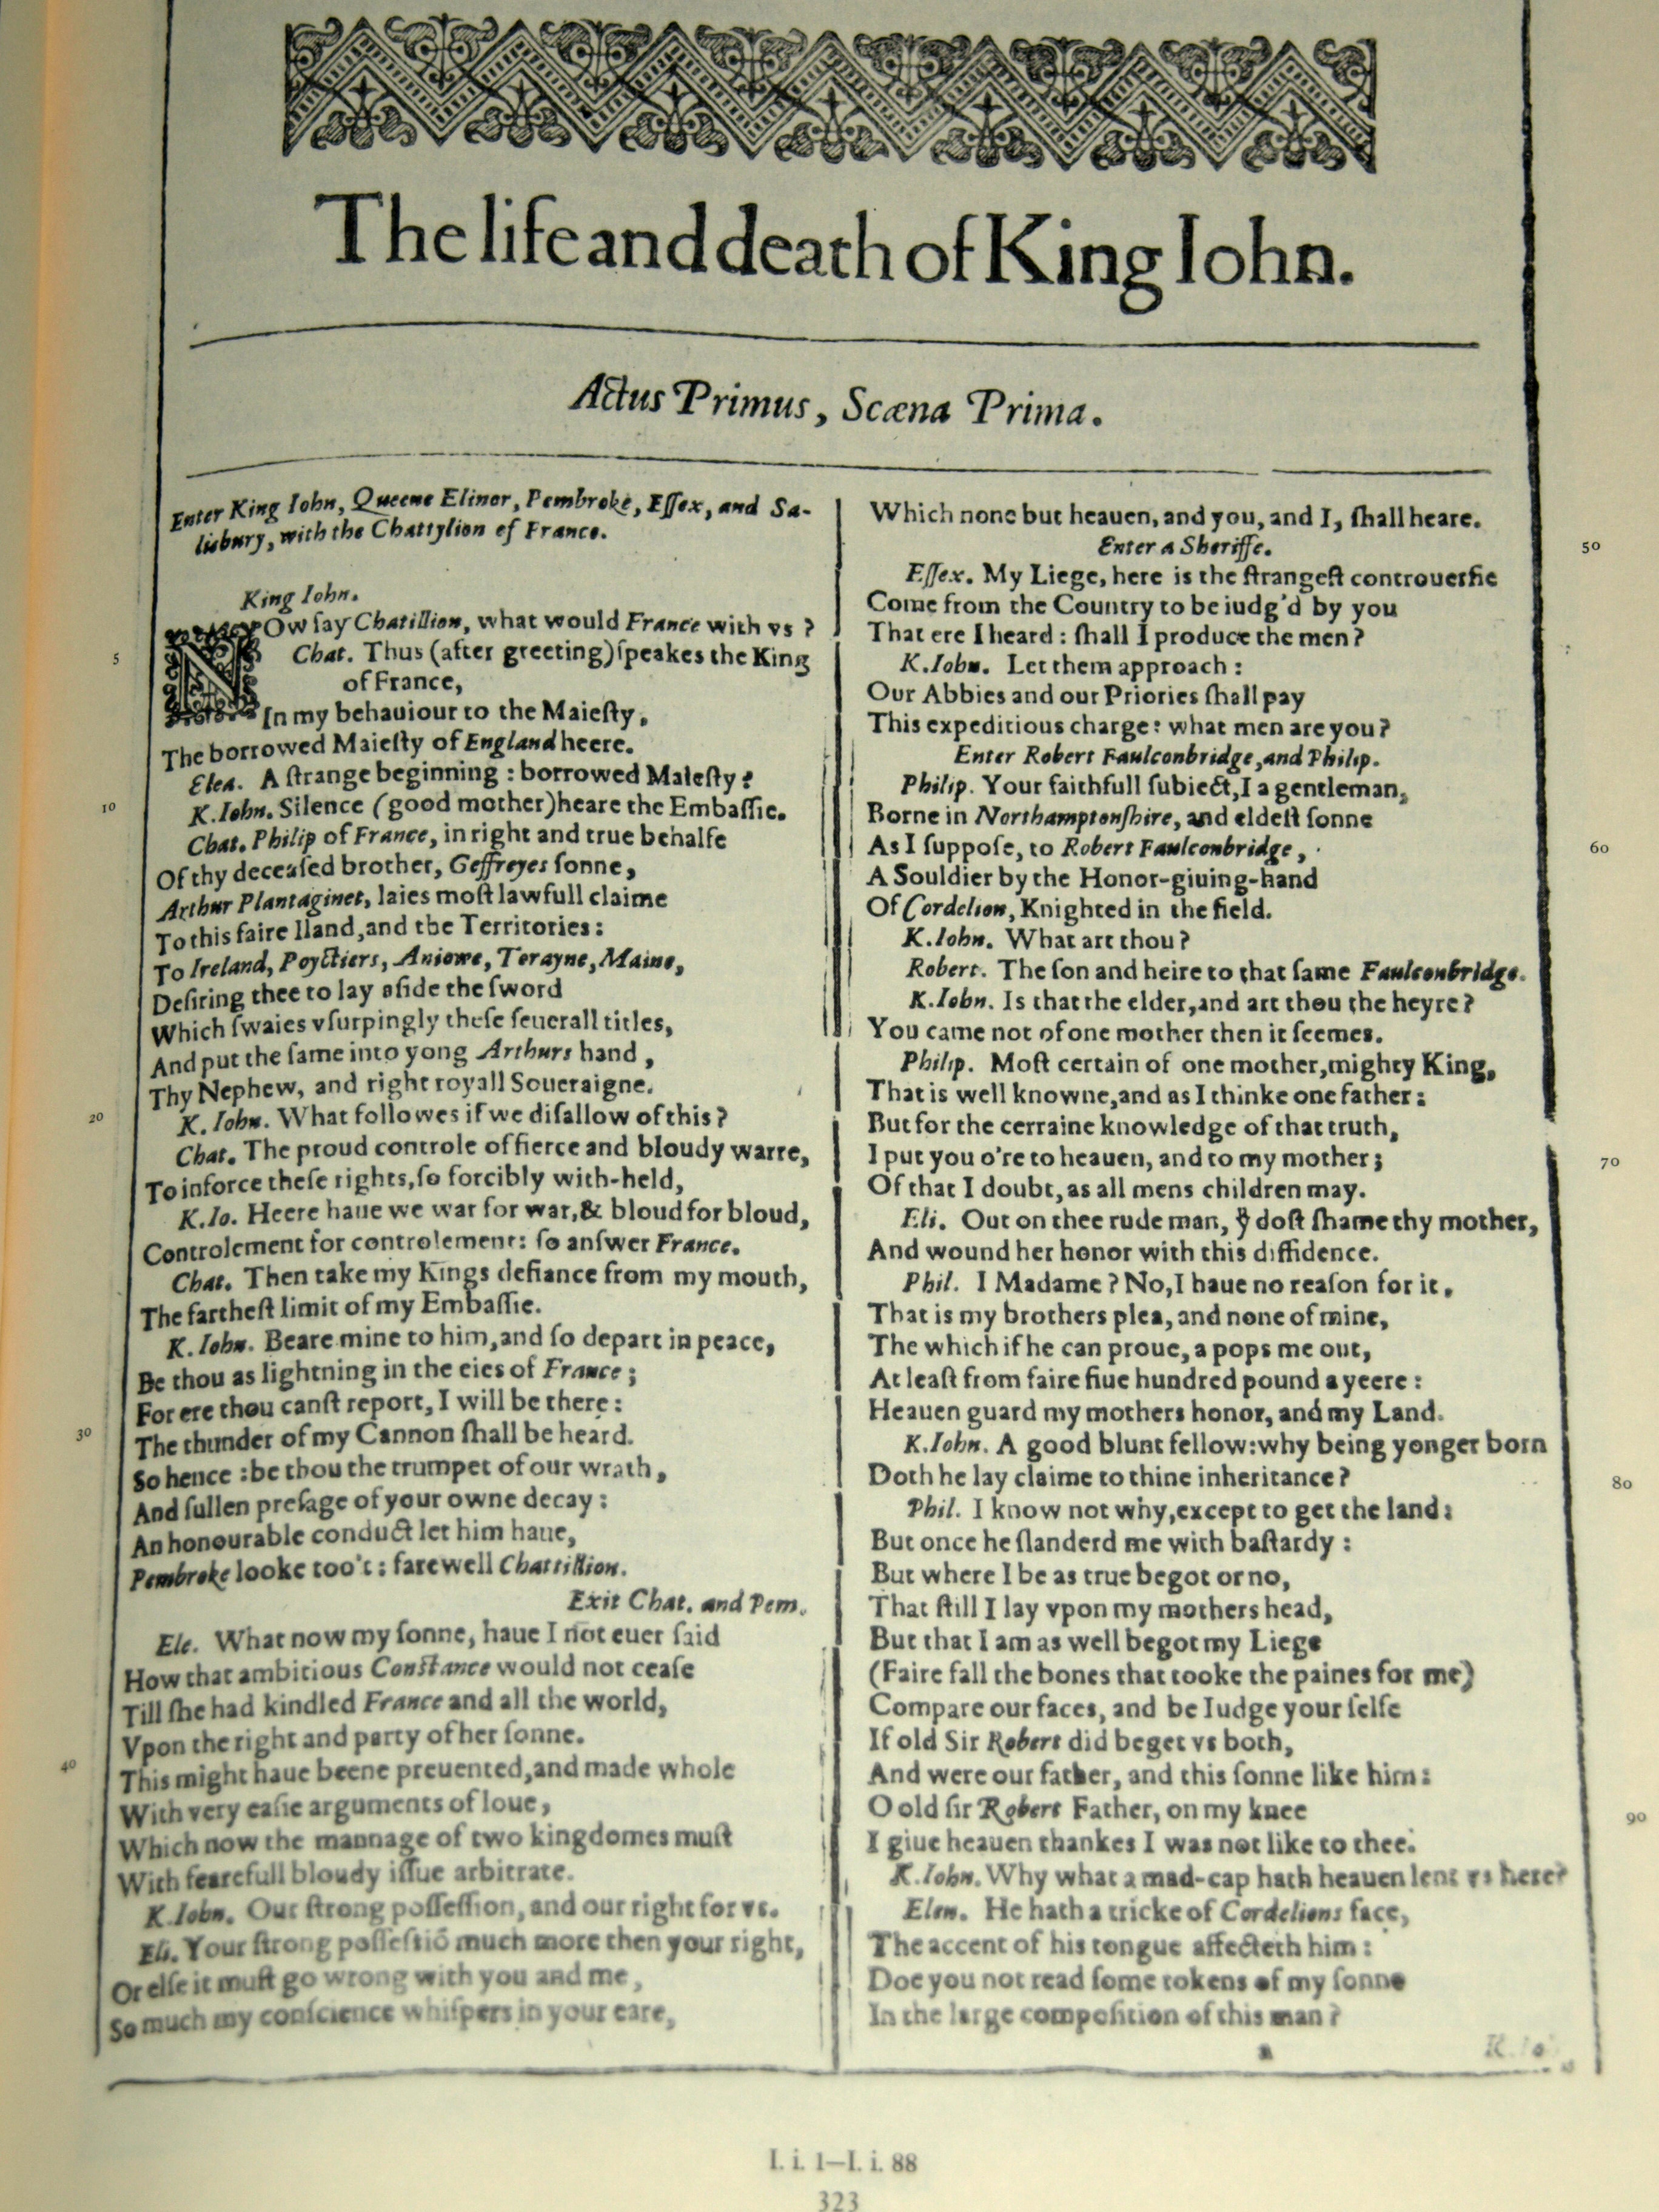 Shakespeare's play The Life and Death of King John